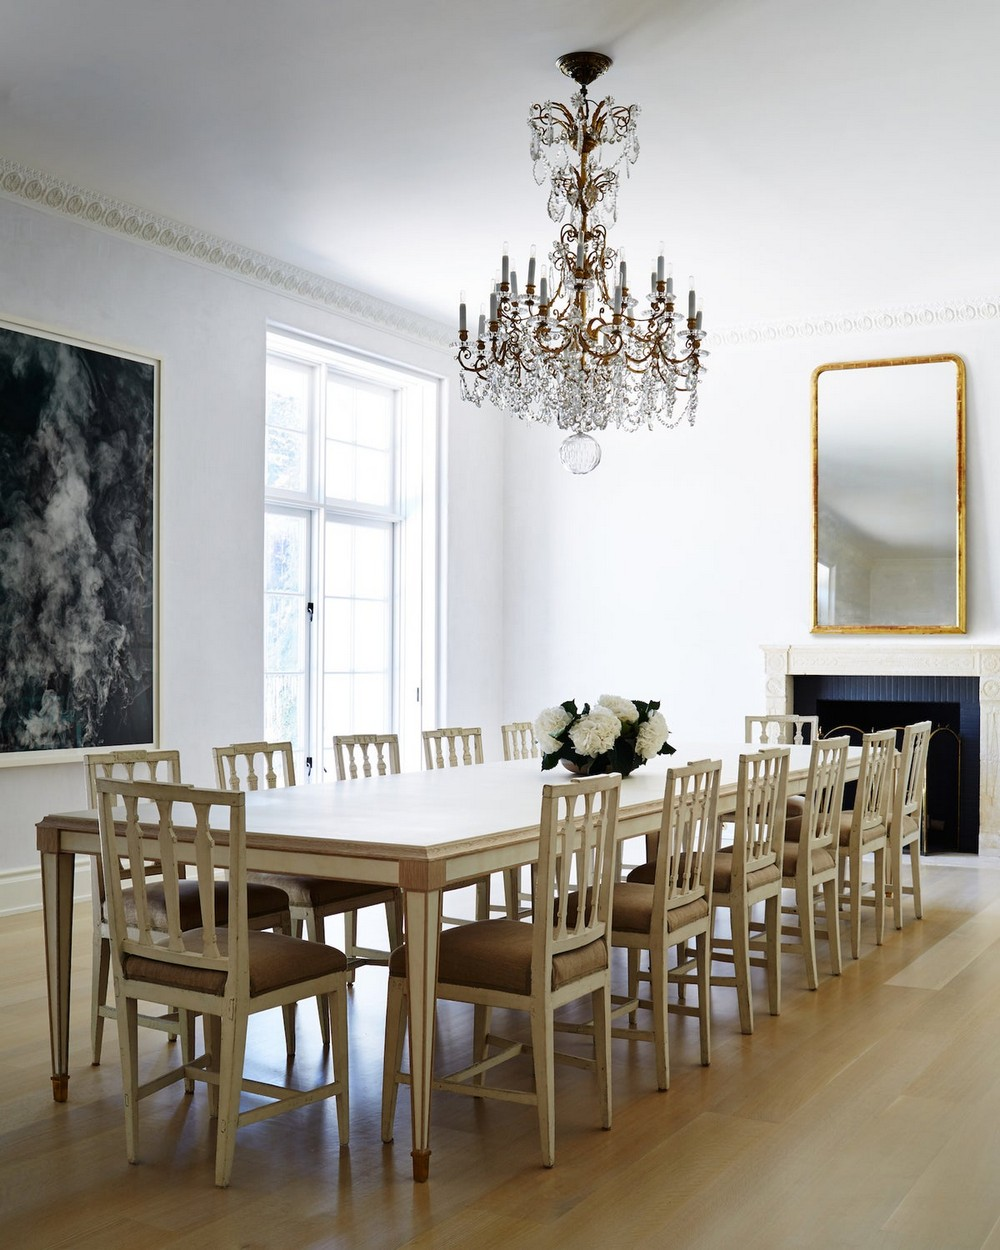 Billy Cotton: Thrilling Dining Room Projects billy cotton Billy Cotton: Thrilling Dining Room Projects 1 1stDibs